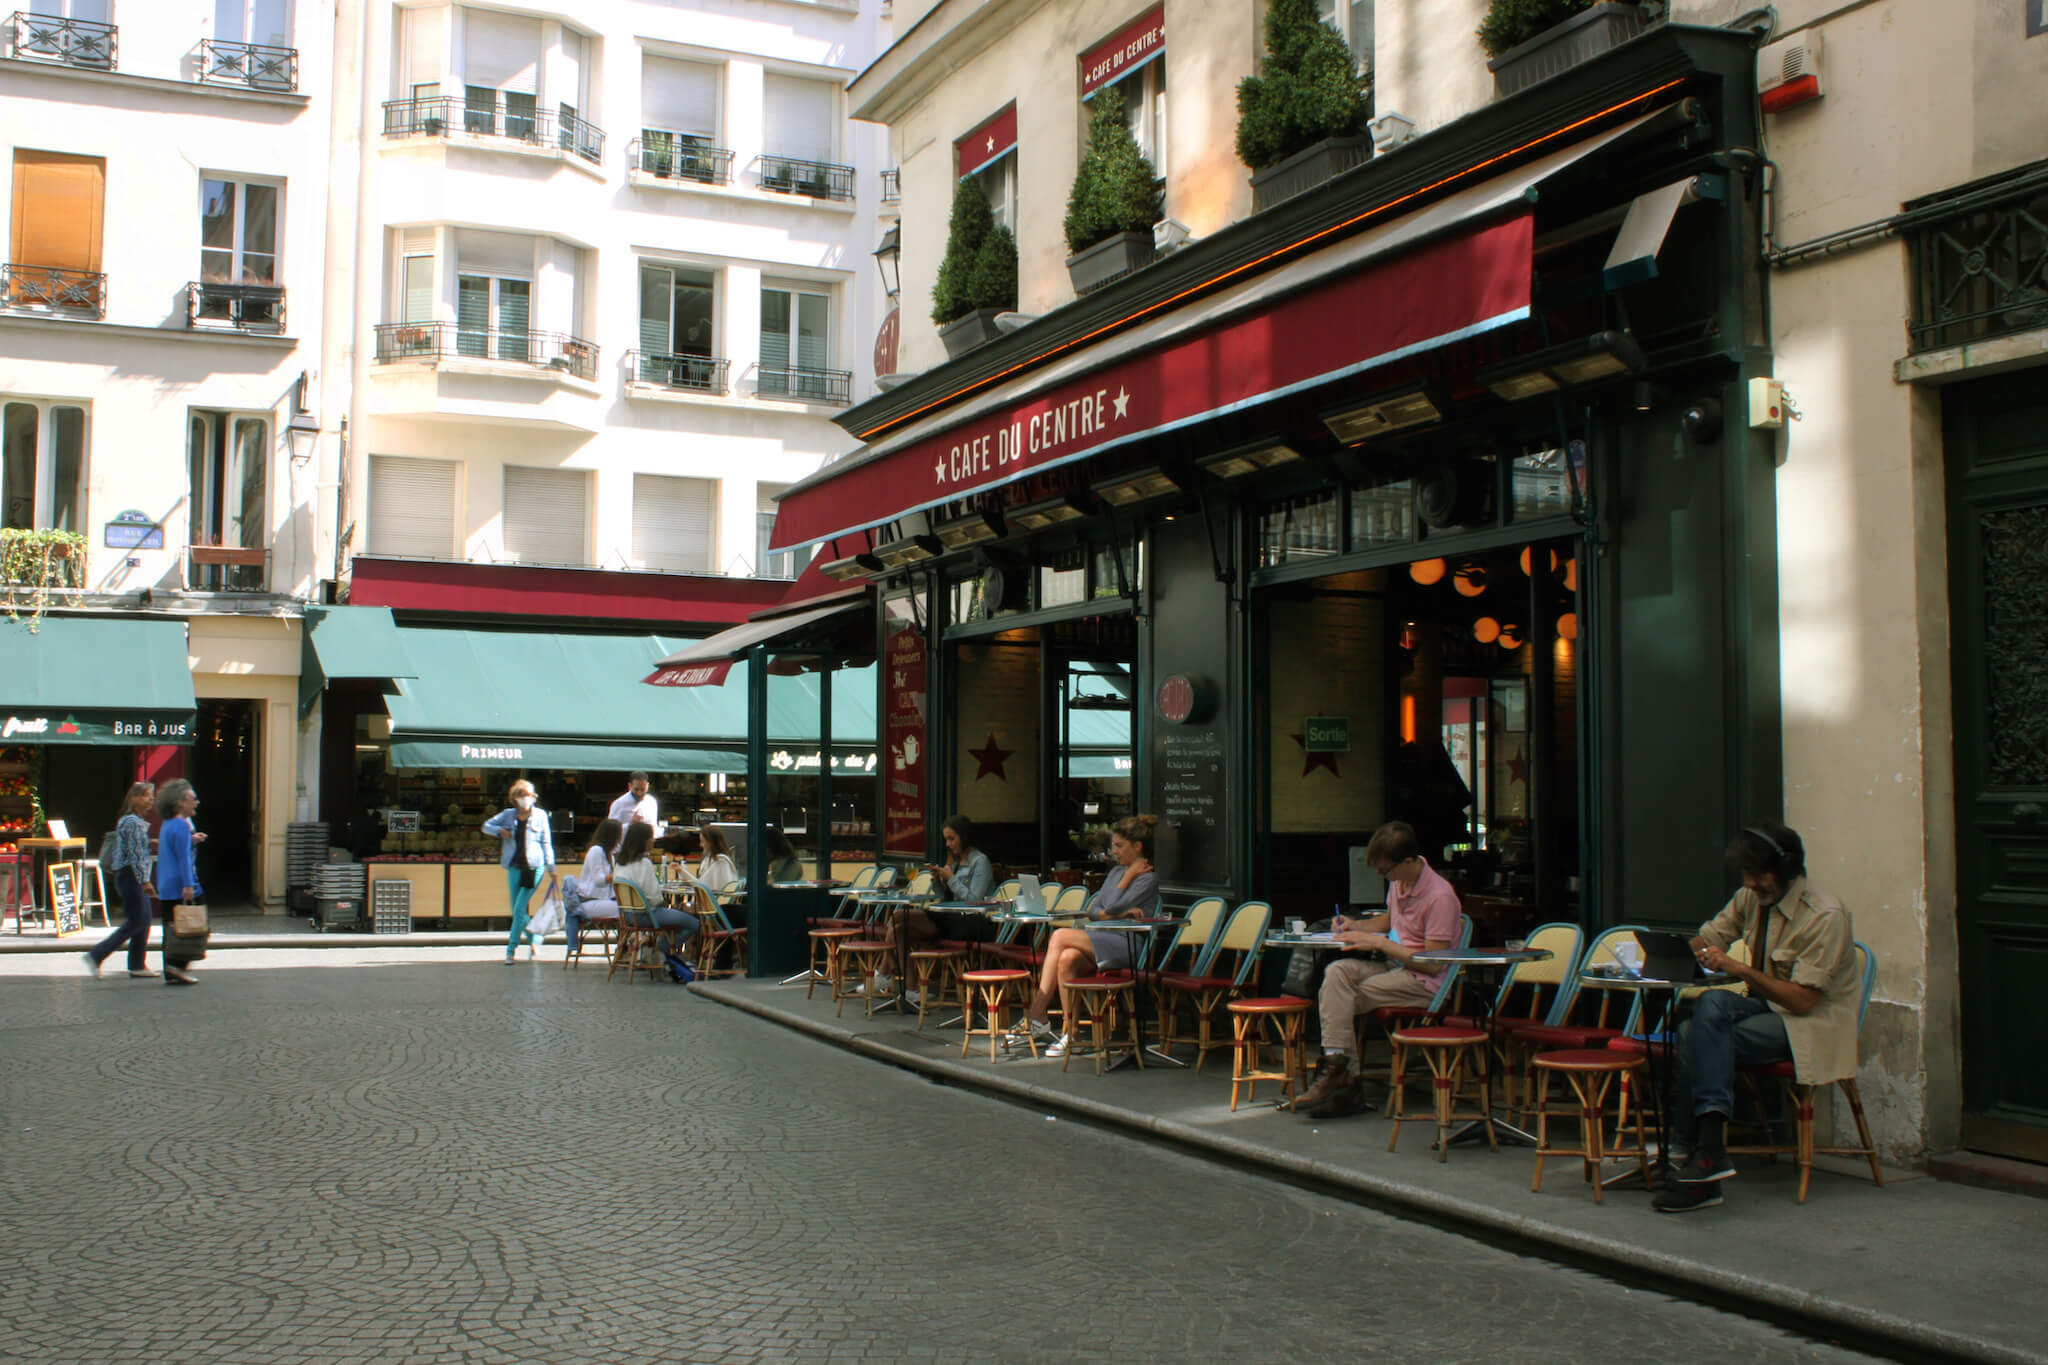 People sit socially distanced from each other at outdoor tables at a café near Rue de Montorgueil in the center of Paris.